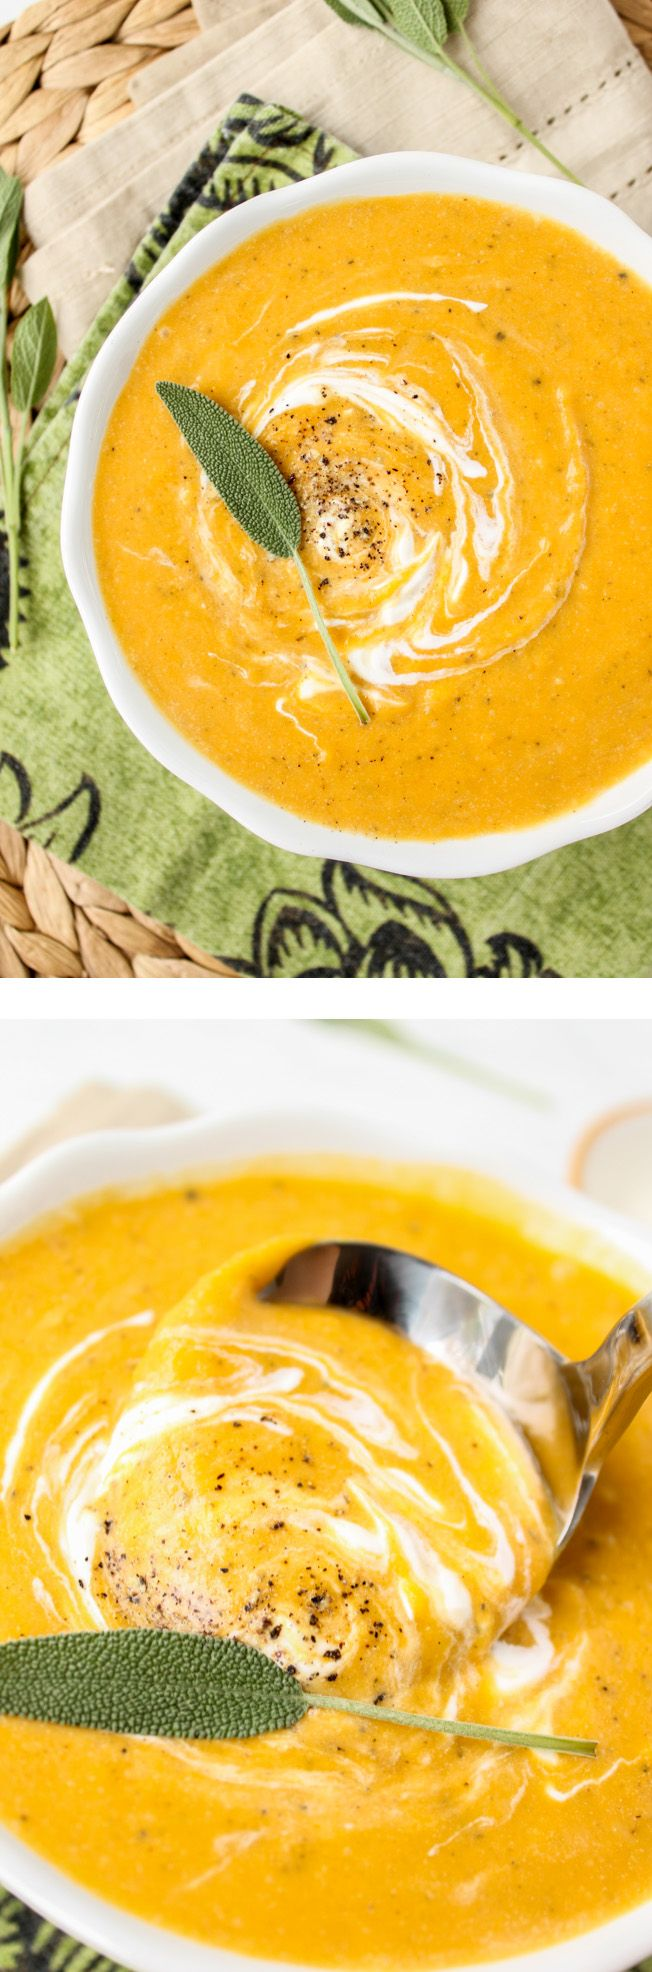 Roasted Butternut Squash Soup from The Food Charlatan // This soup is full of flavor but not calories! Comfort food for a cold